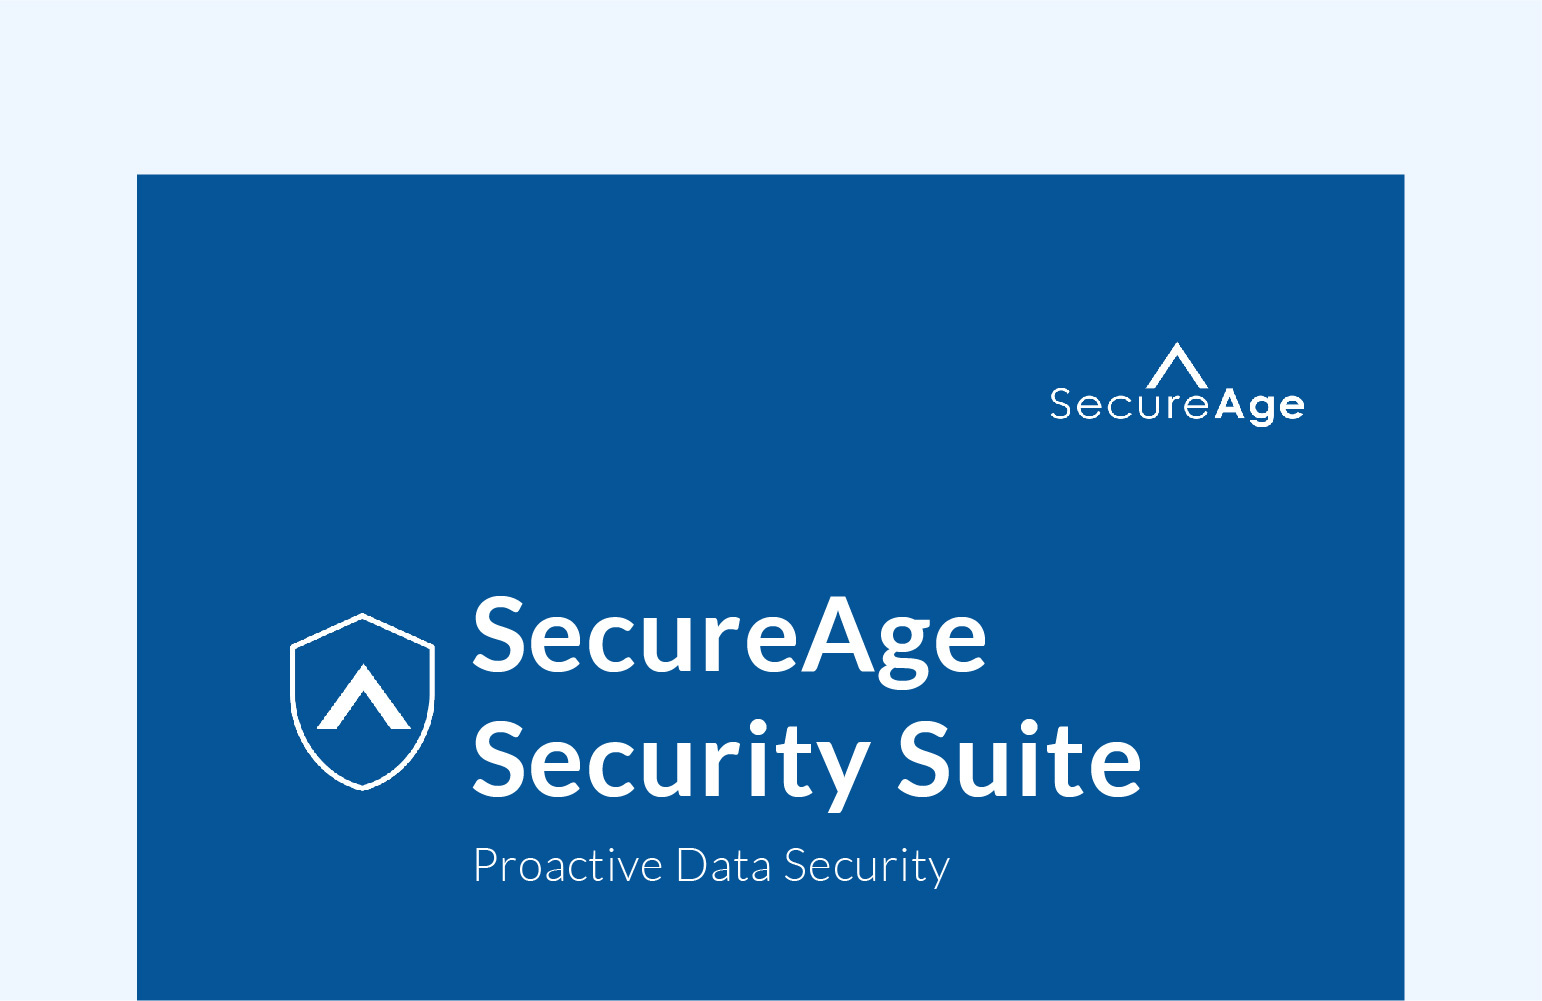 SecureAge Security Suite Brochure